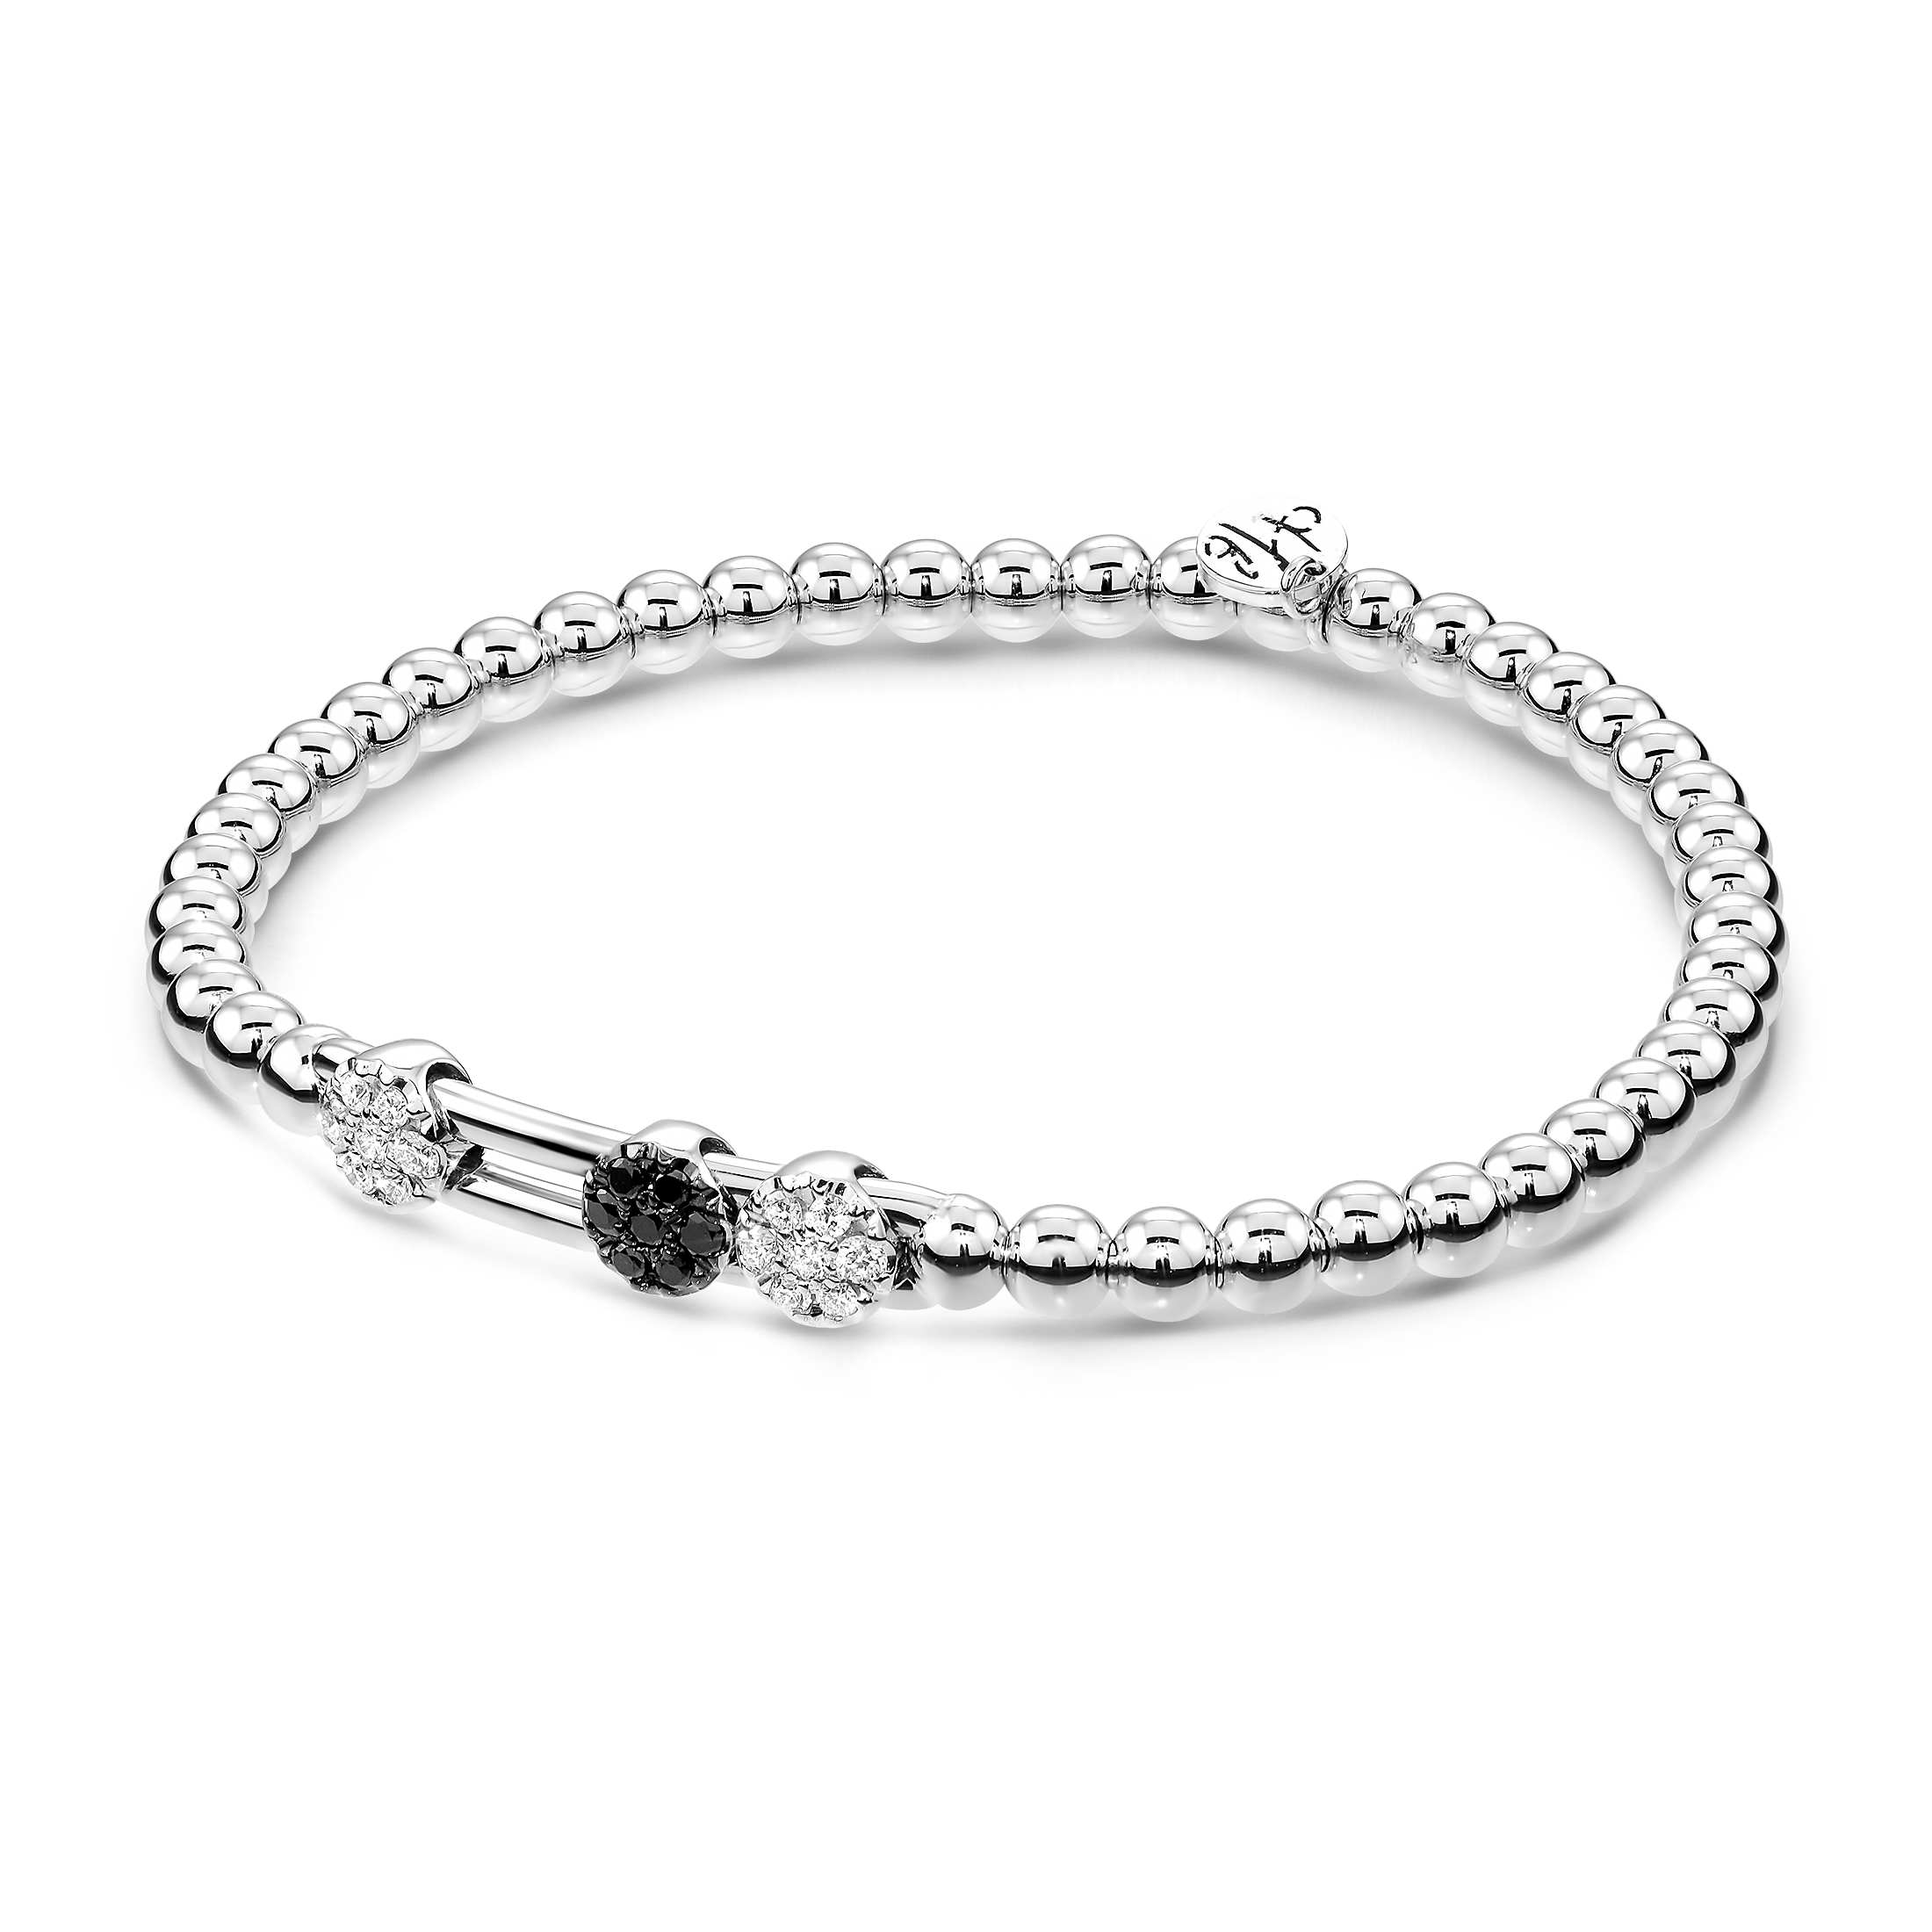 loupe bracelet demeulemeester img with heavy silver pure jewellery chain ann small